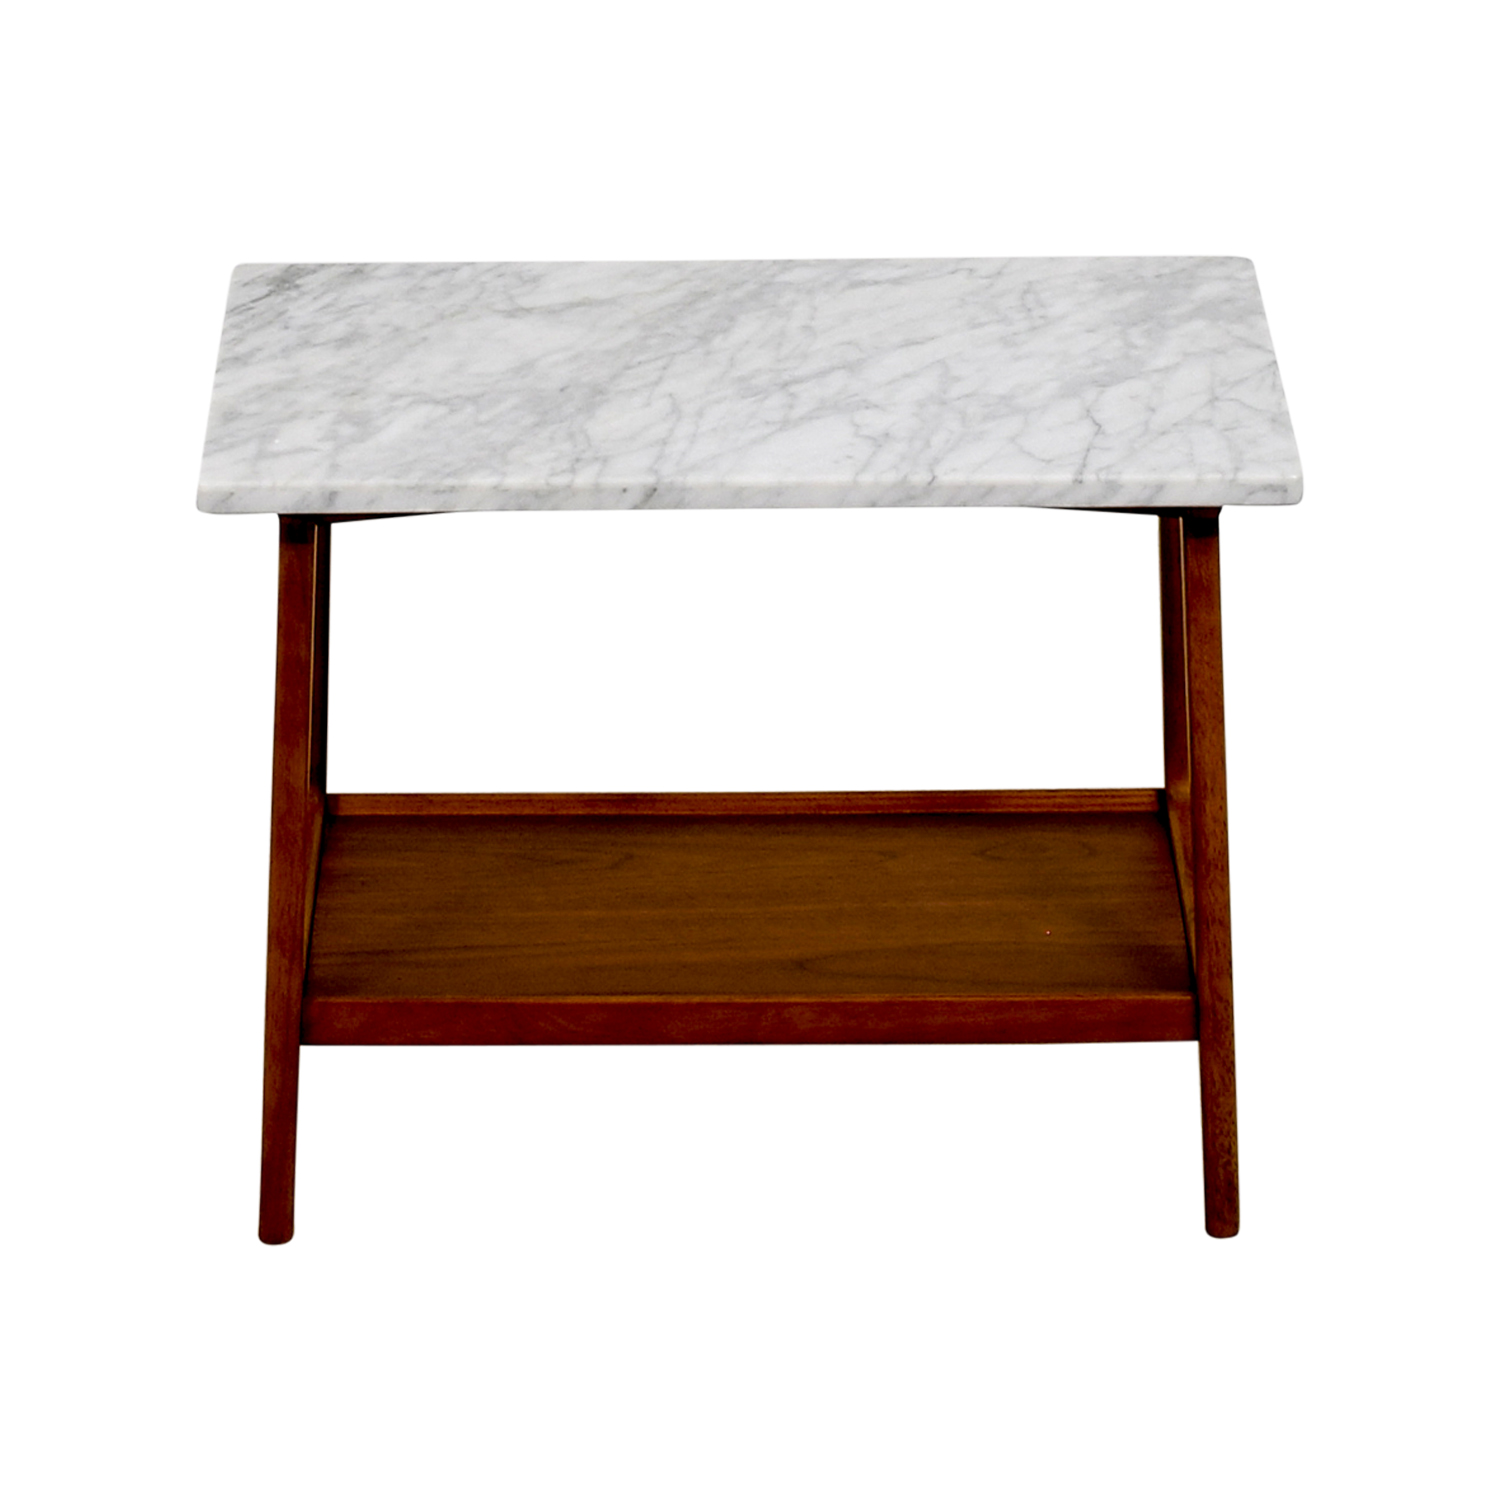 57% OFF West Elm West Elm Reeve Marble & Walnut Side Table Tables